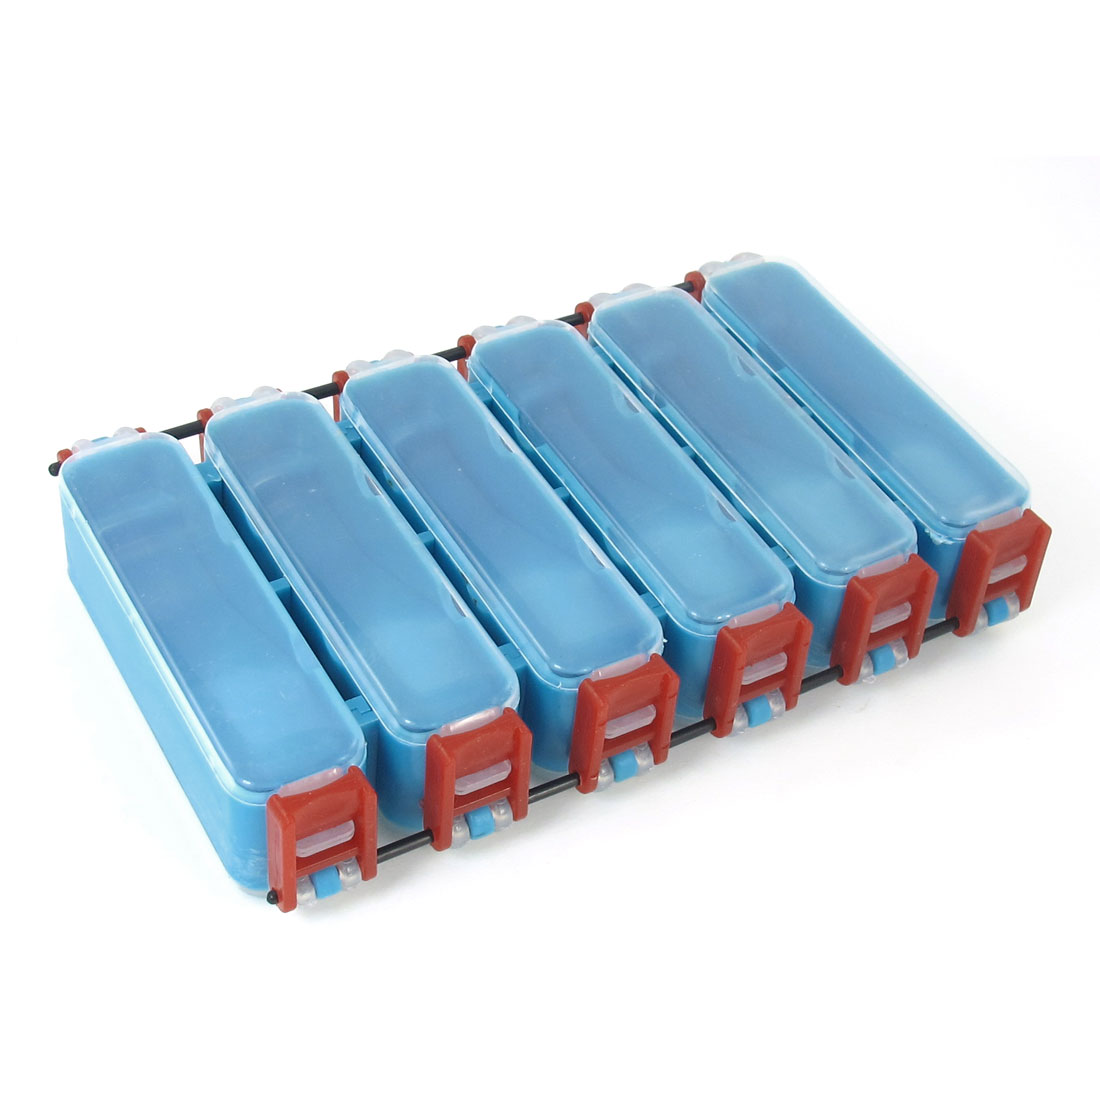 Fishing Angling Double Sides 12 Rectangular Slots Lure Bait Case Organizer